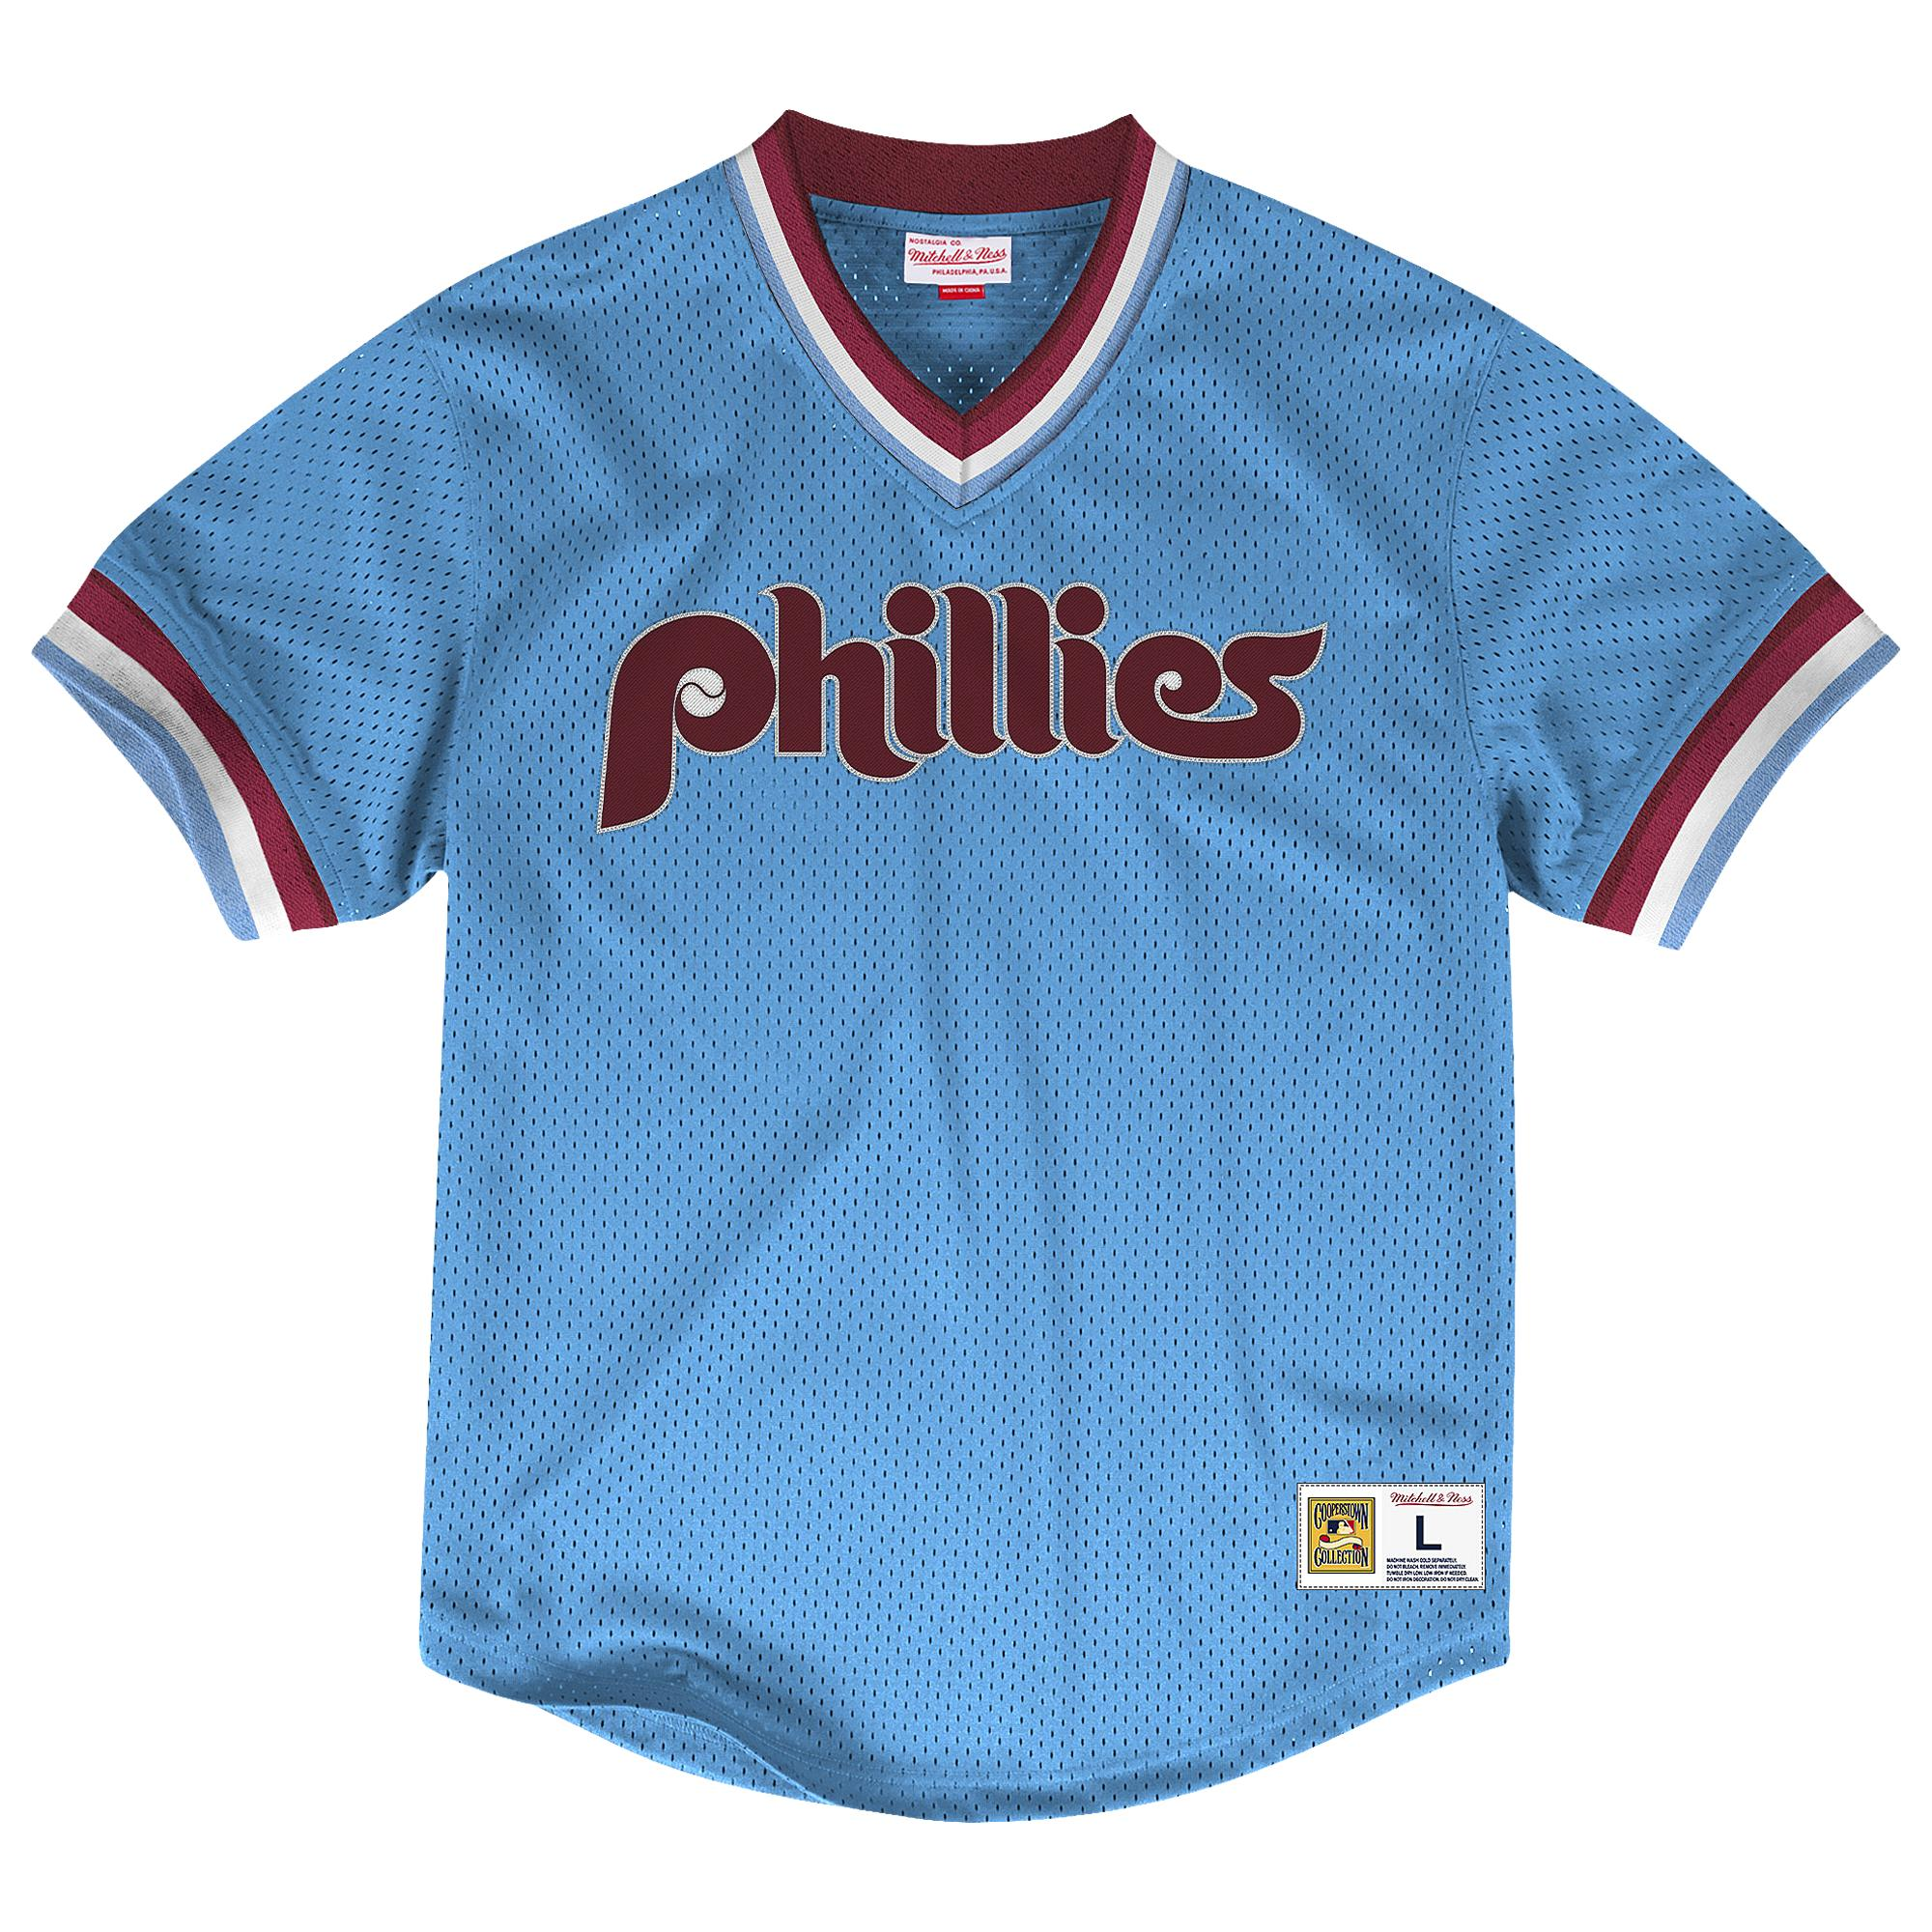 separation shoes 70357 0cb45 Mitchell & Ness Philadelphia Phillies Mlb Team Bp Jersey in ...